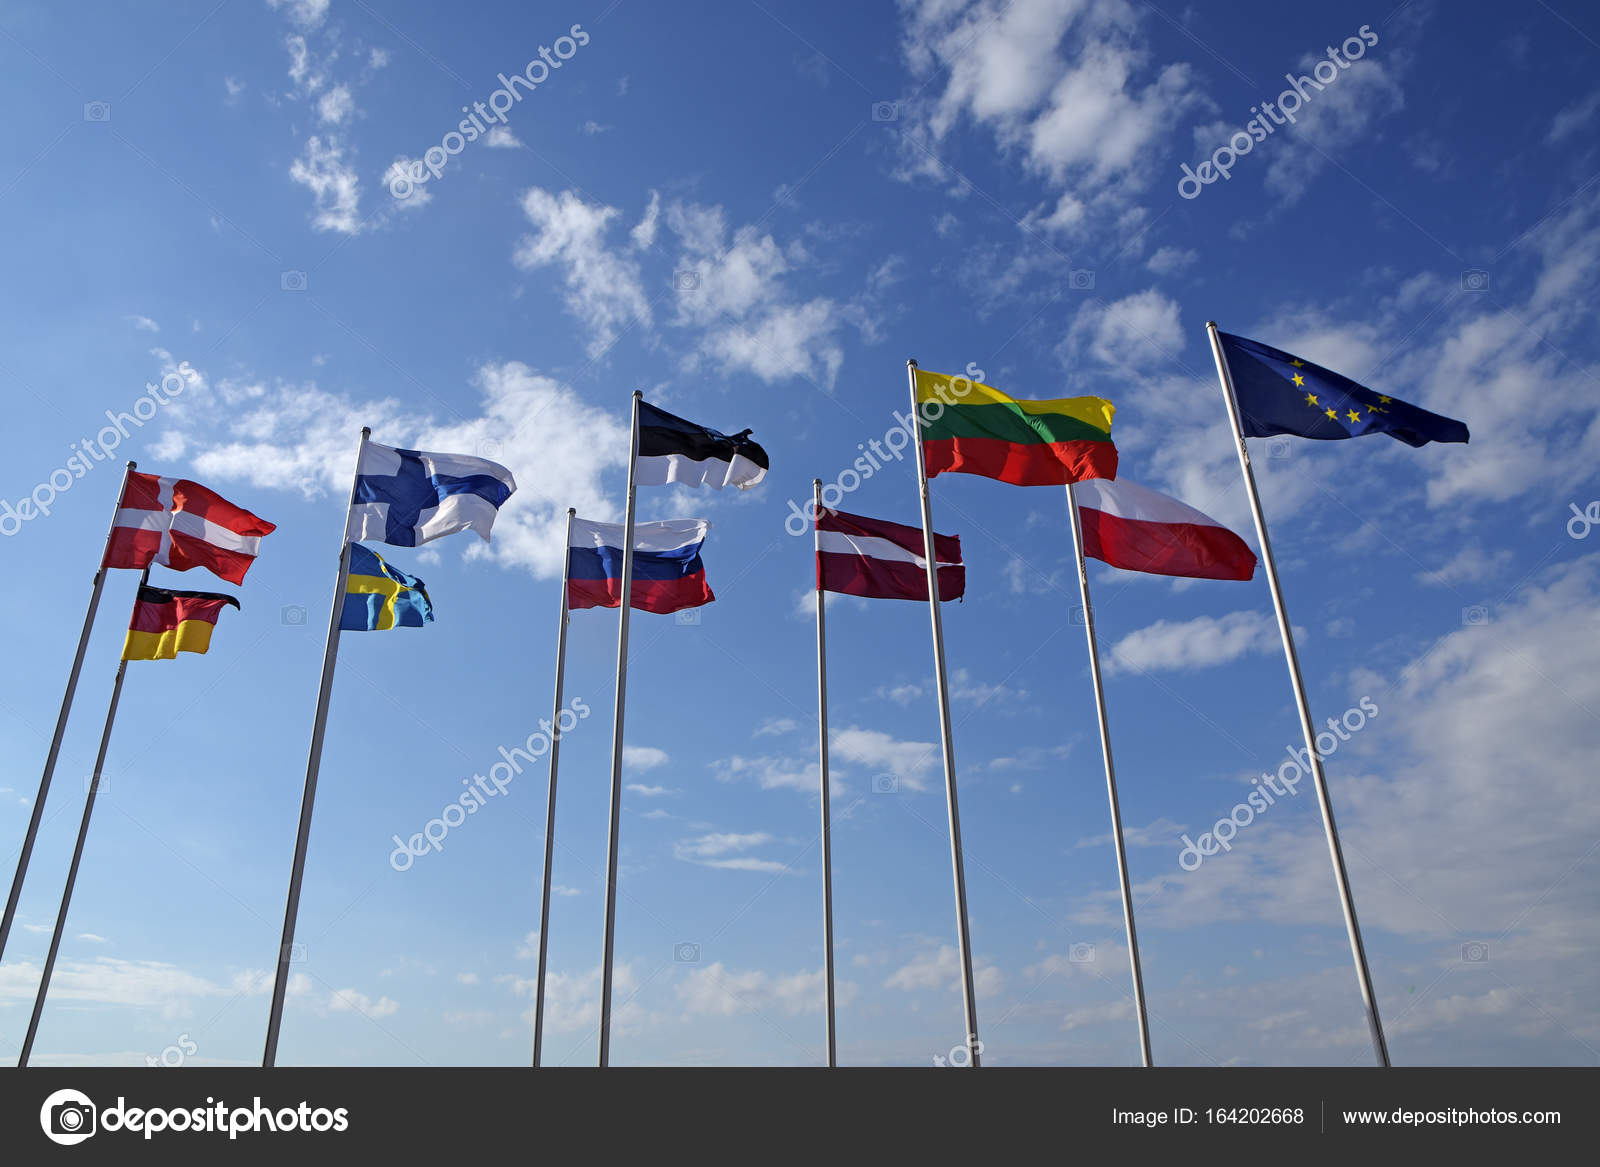 Flags of different countries the national symbols or signs of flags of different countries the national symbols or signs of denmark germany finland sweden estonia russia austria lithuania poland and europe biocorpaavc